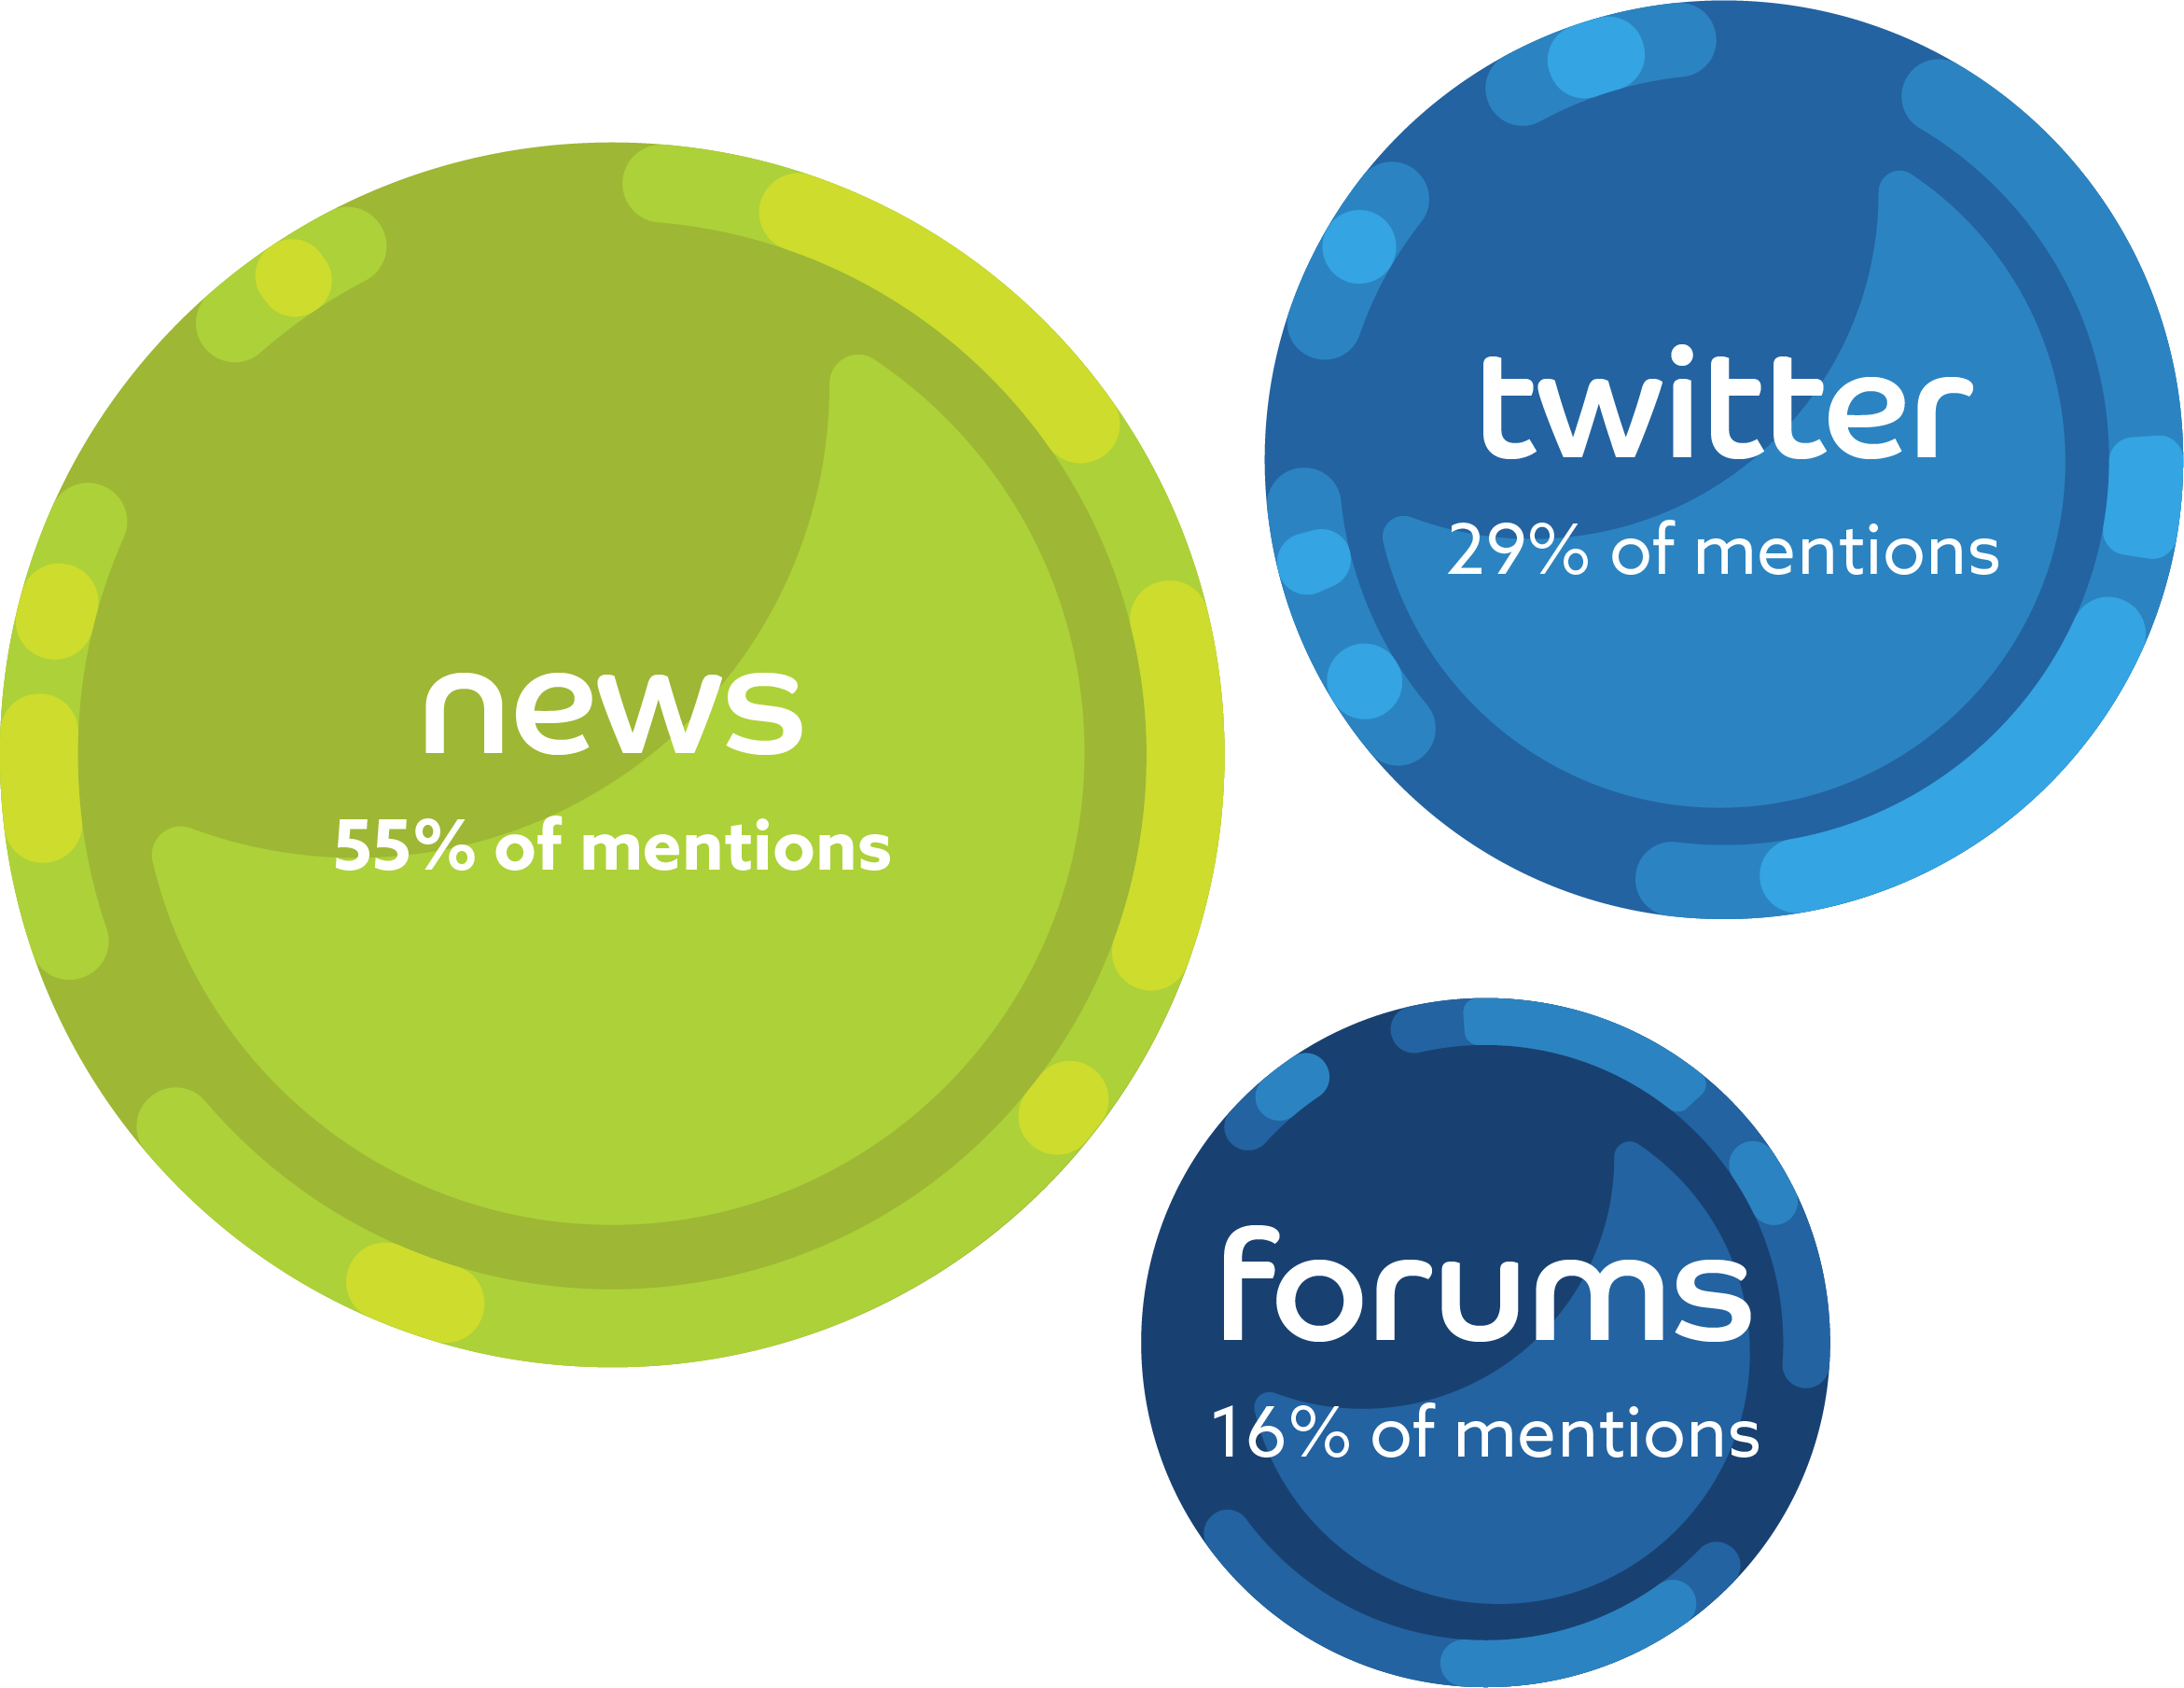 circle graphs depicting: News: 55% of mentions, Twitter 29% of mentions, forums 16% of mentions